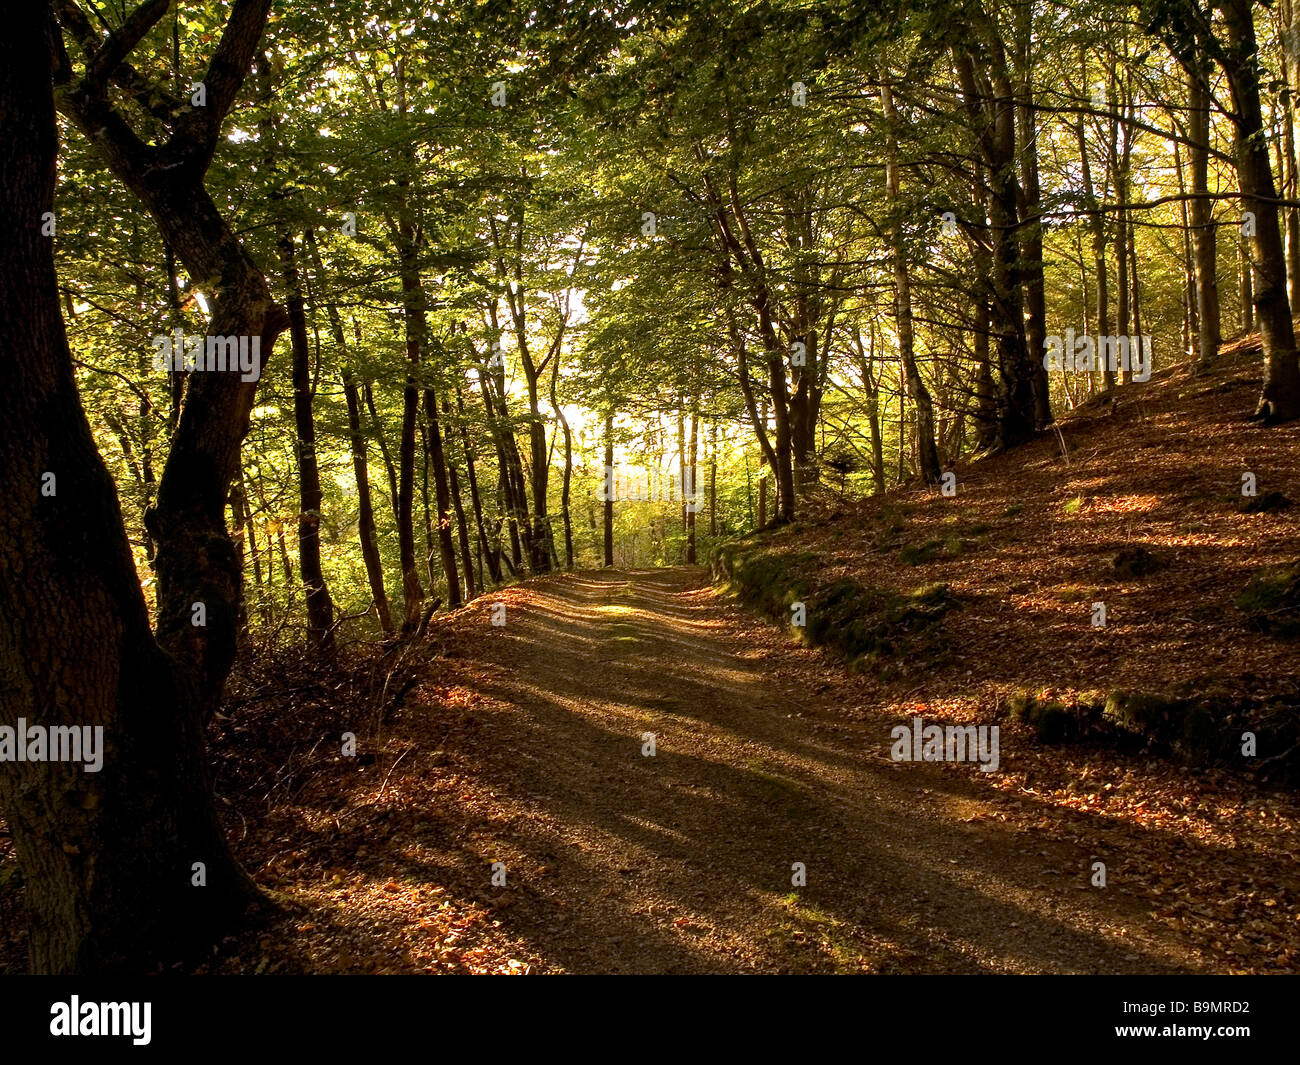 idyllic forest path through typical beech forest - Stock Image